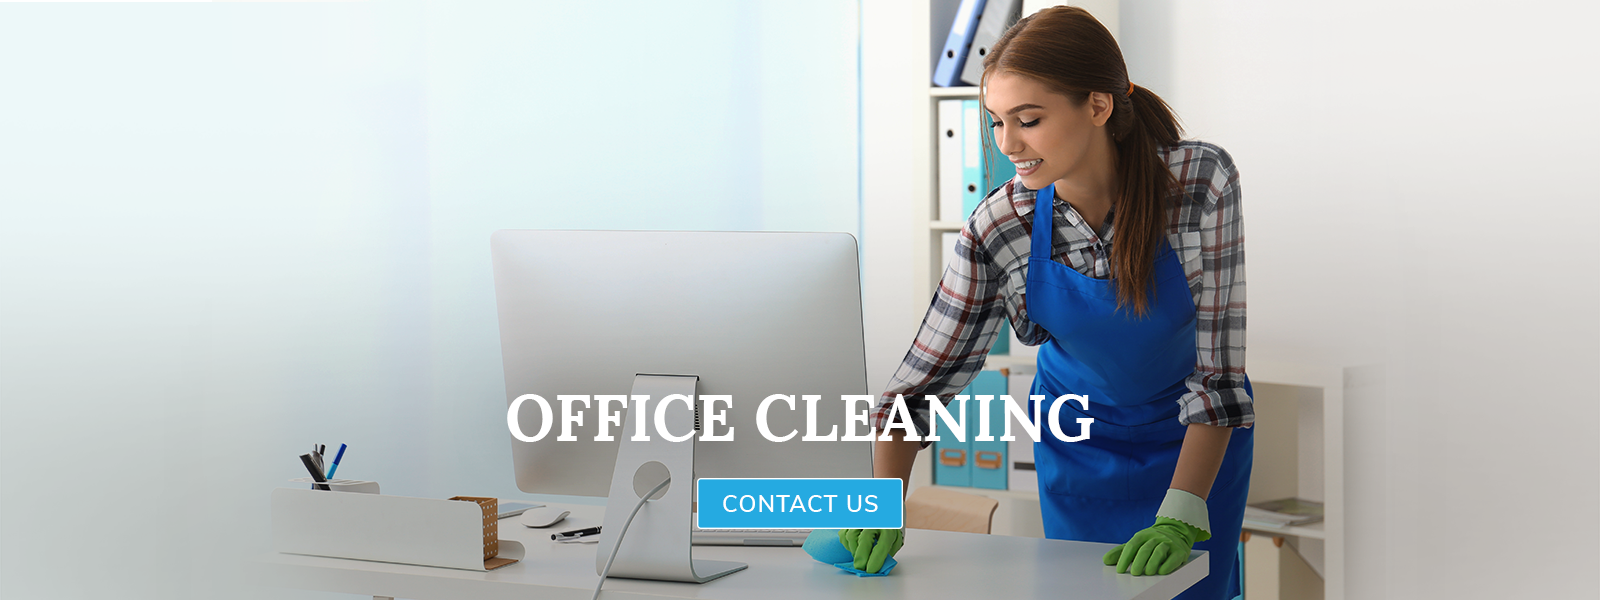 Cleaning Services Windsor Ontario